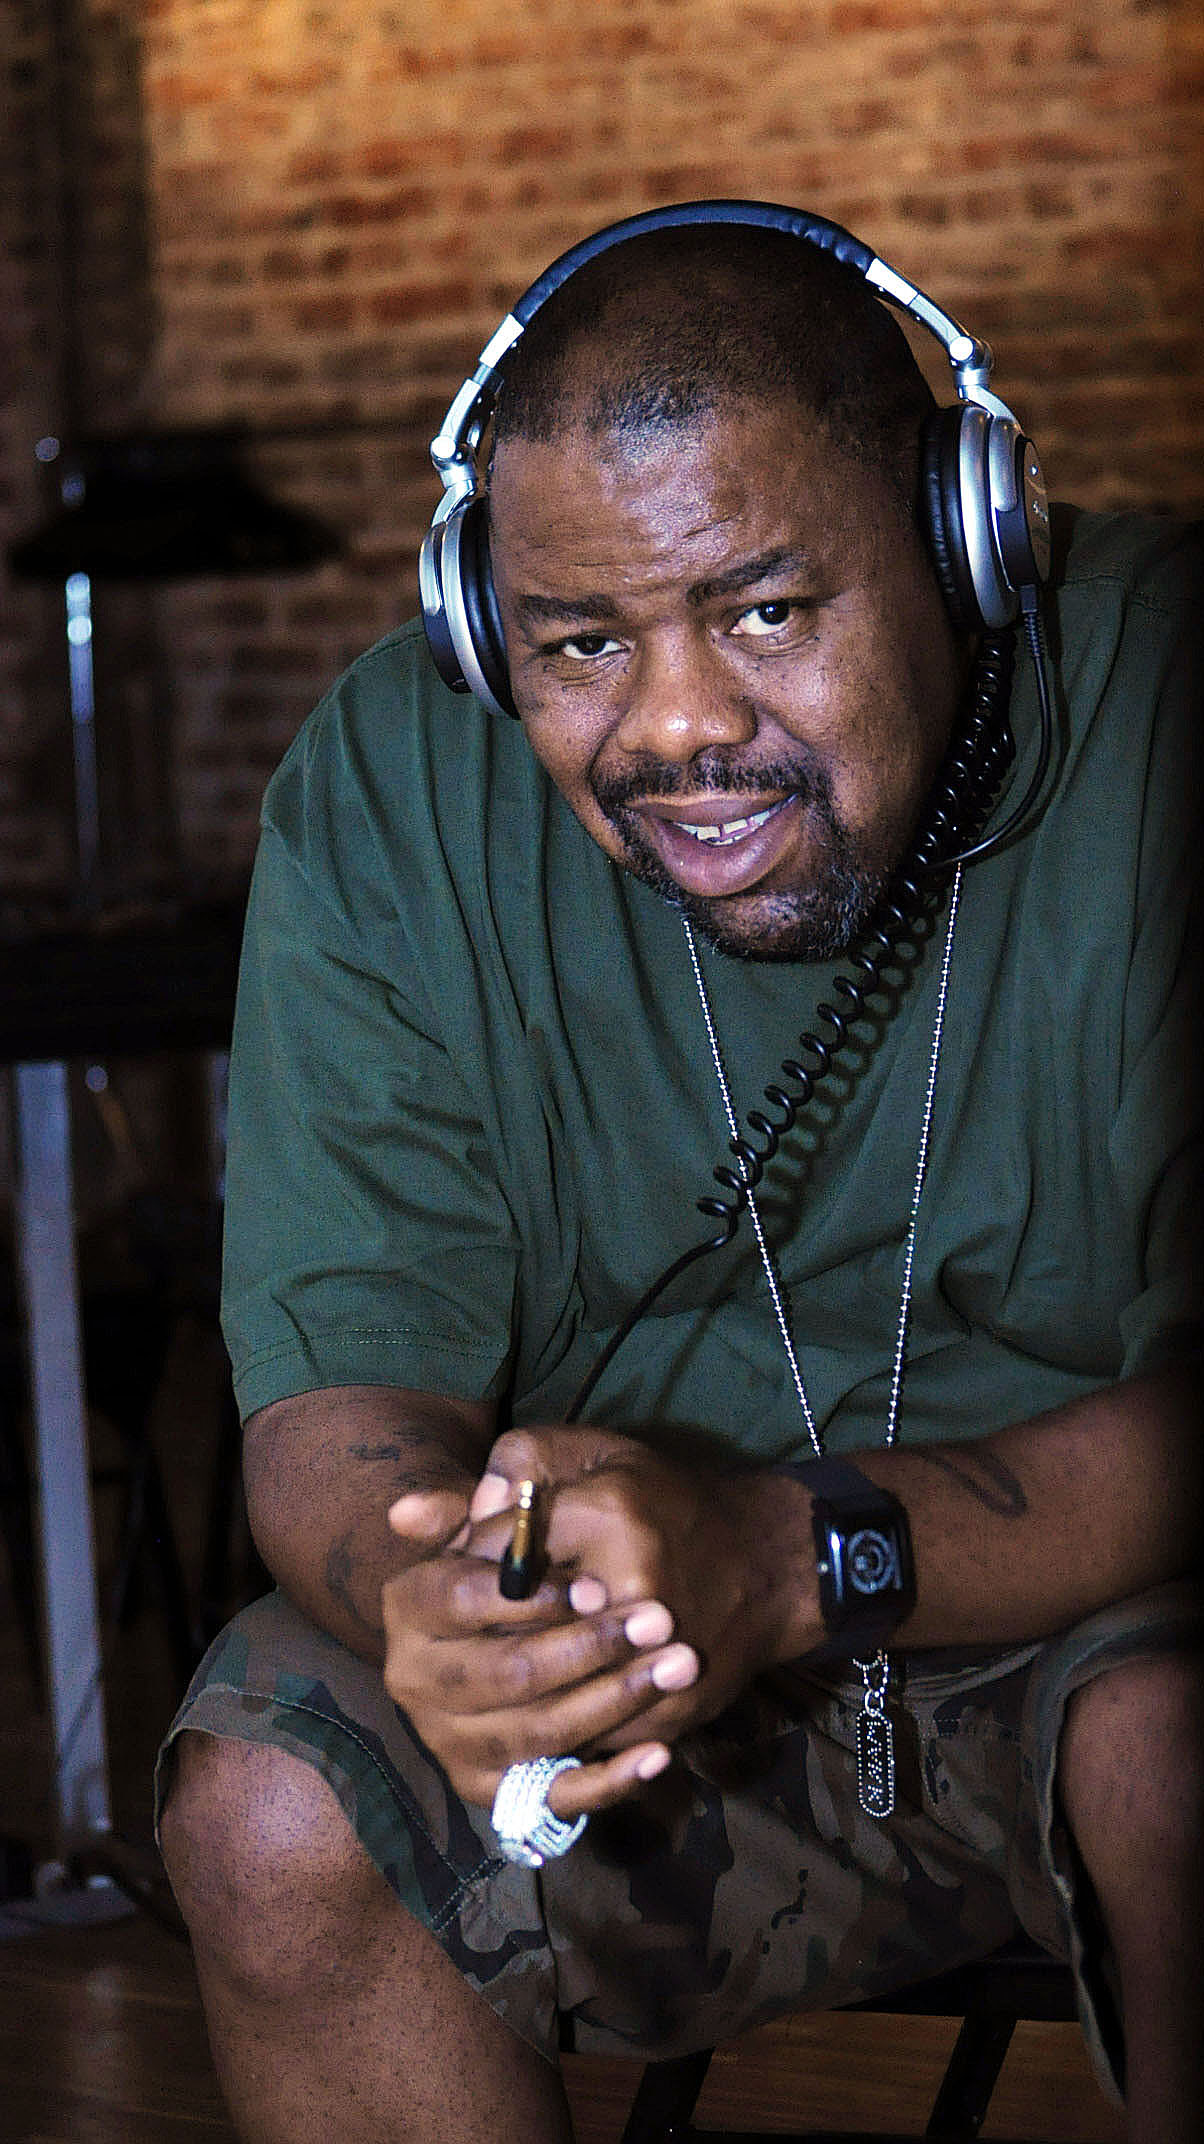 Biz Markie - Special Guest DJ —- Biz Markie headlines Fresh Fest Cleveland 2019!The legendary Biz Markie brings more than 30 years of solid hip-hop acumen and an overwhelming fan-base that stretches from New York City to Japan to Europe.Born to embrace hip-hop, Biz is originally from Harlem but later moved to Long Island where he gained notoriety by his early teen years for beat boxing and rhyming. The Biz began his journey by beat boxing his way into hearts of hip-hop lovers and delivering humorous, witty rhymes that made him love-able and admired by music fans all over.